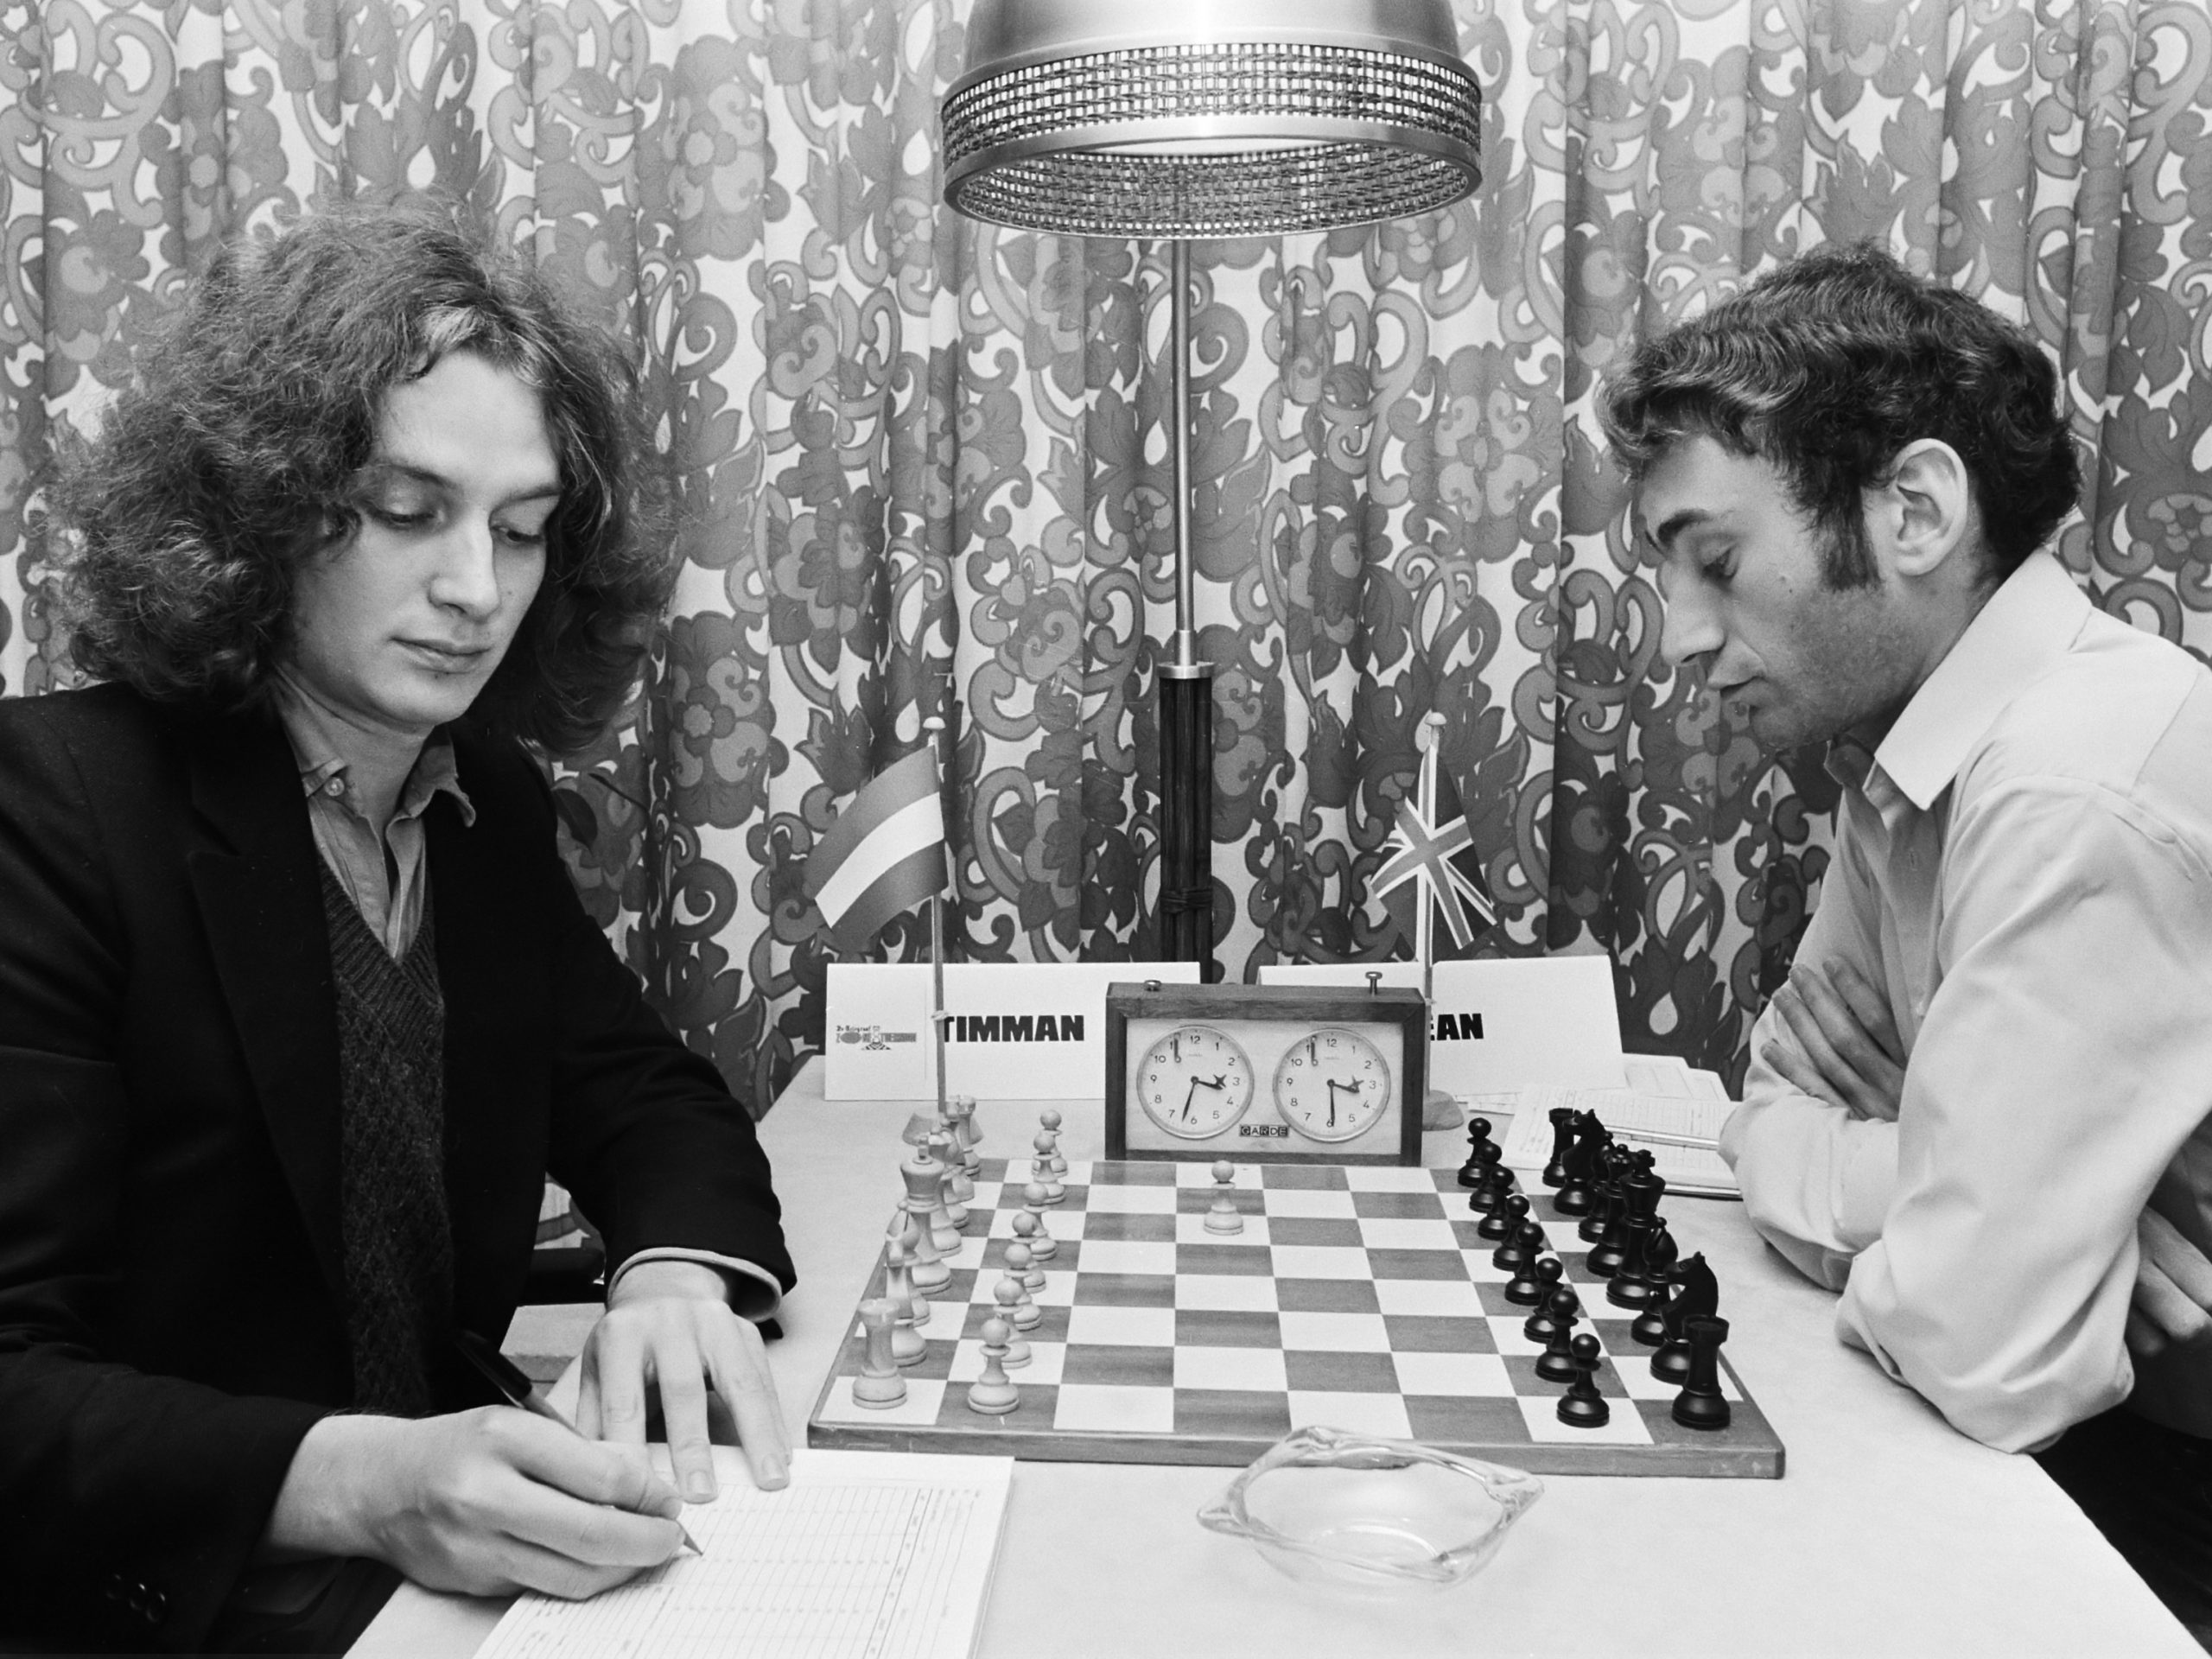 Jan Timman plays Michael Stean at the 1978 Amsterdam FIDE Zonal. The Dutch GM won in 39 moves.